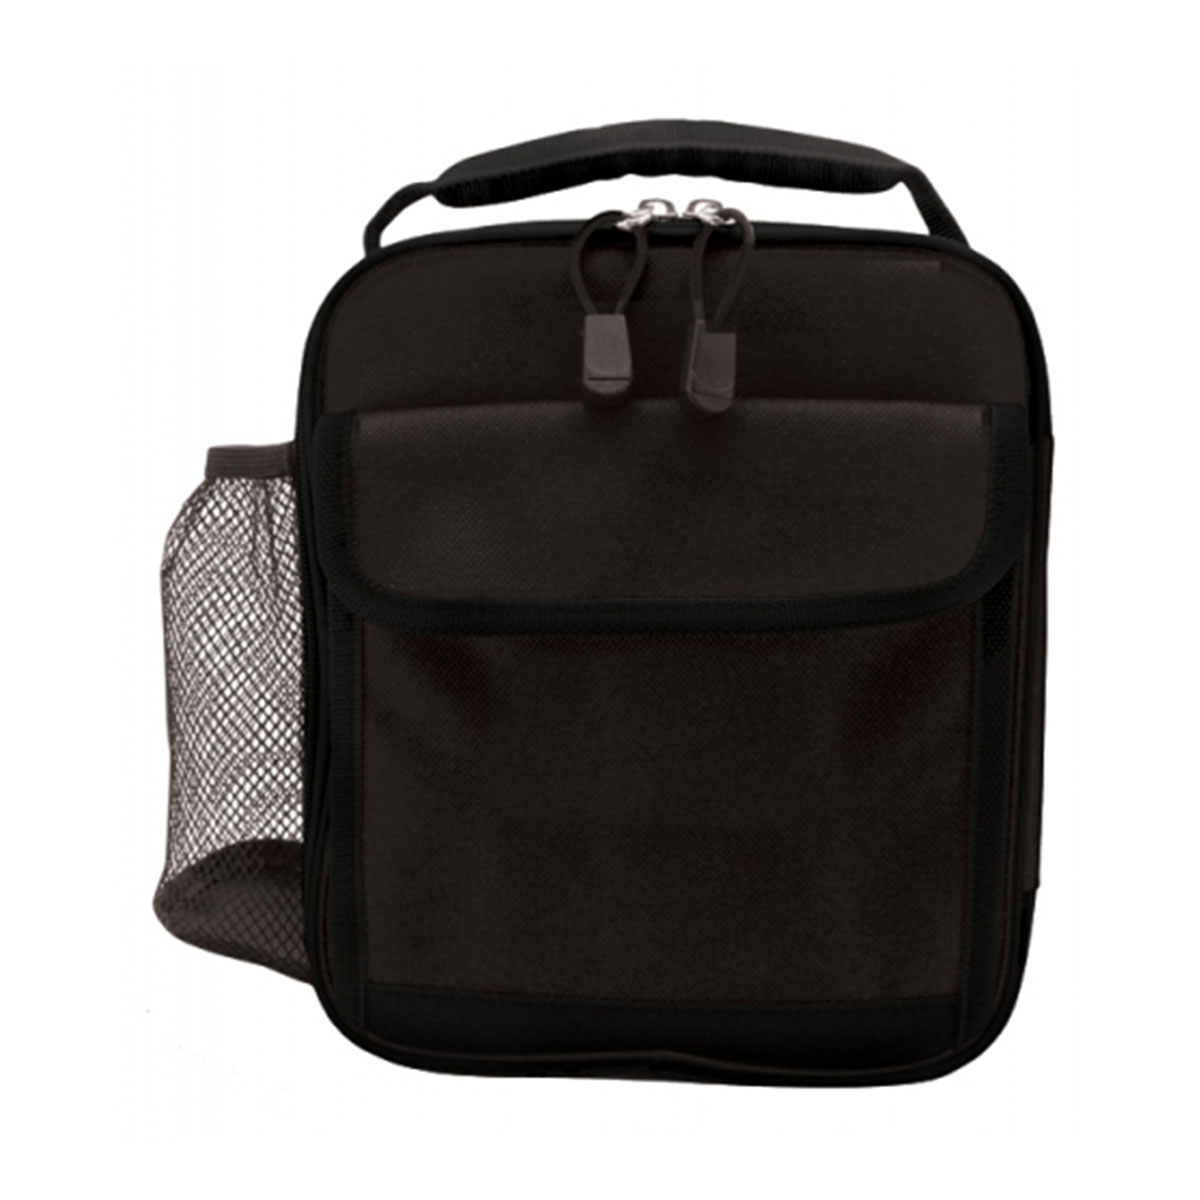 Ivory Cooler Bag-Black / Black